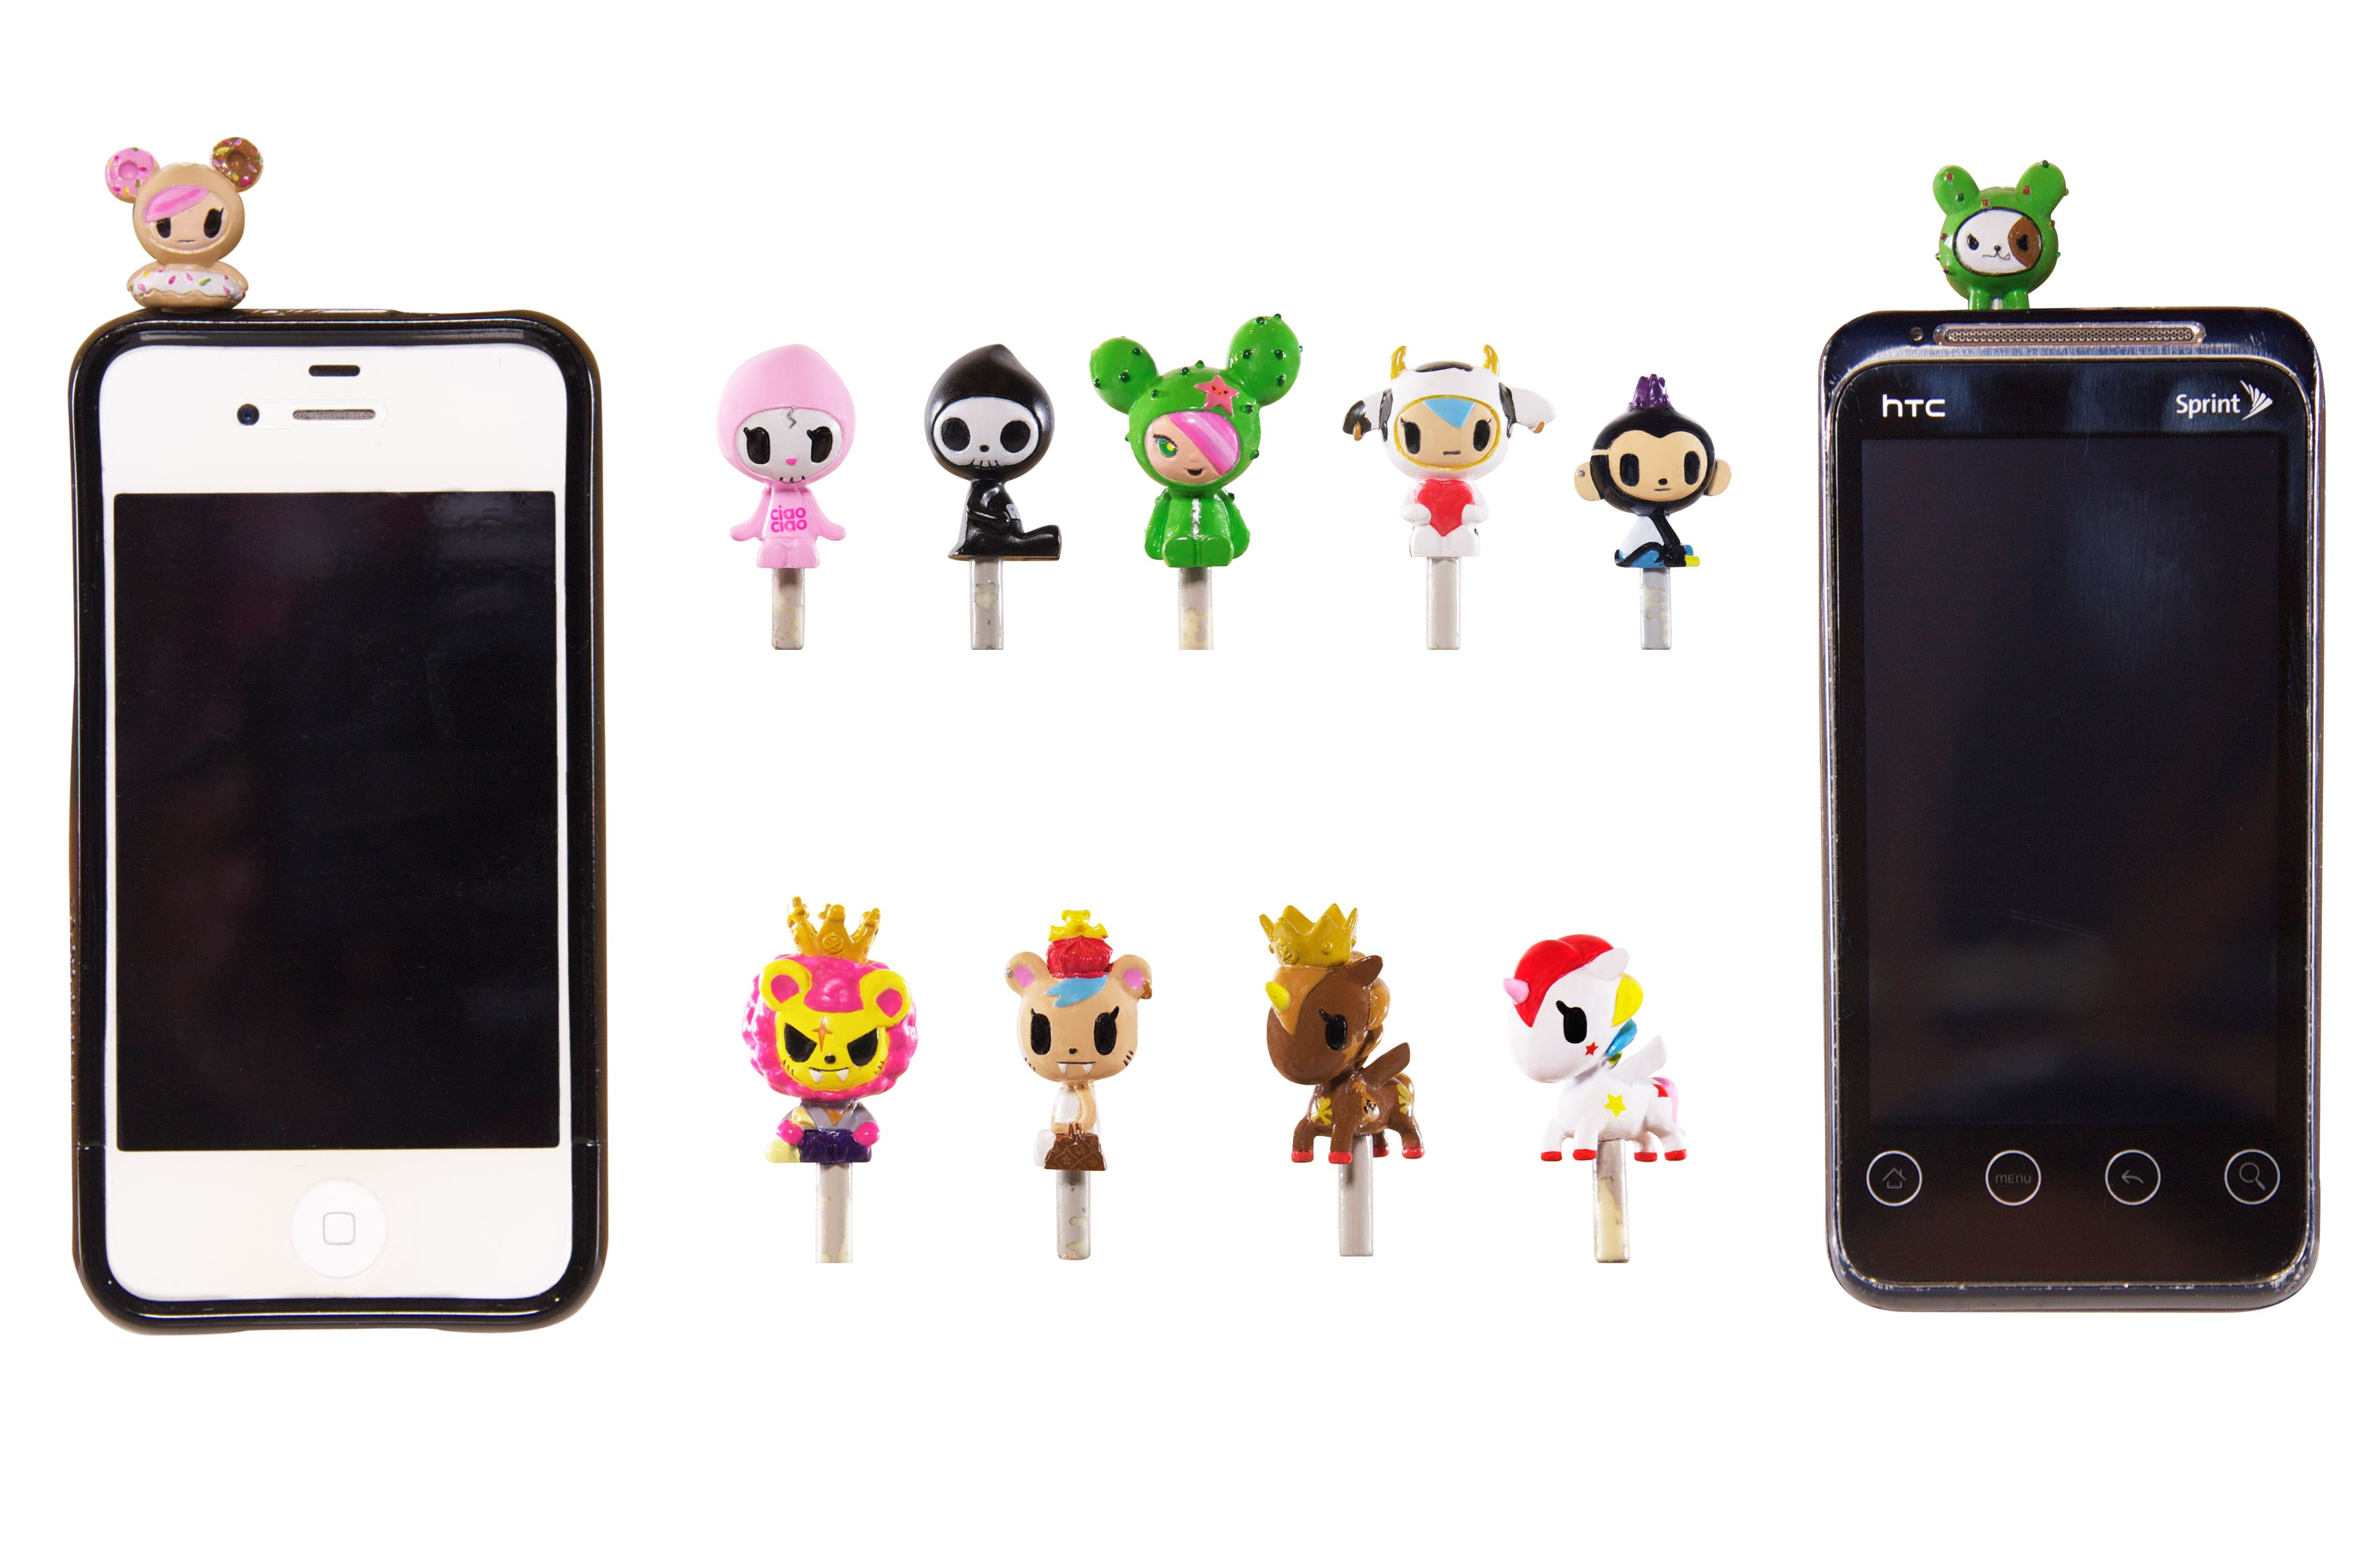 Spice up your phone with these funky accessories from Tokidoki! | TOKIDOKI PHONEZIES (box of 30 pieces) |  Find out more about this product here: http://wamli.com/shop/tokidoki-phonezies-box-of-30-pieces/ | #MyWamli #crazy #funky #cool #quirky #unique #tokidoki #brand #mobile #phone #accessories #smartphone #iphone #android #gadgets #gizmos #online #onlineshop #onlineshopping #ecommerce #shop #shopping #dubai #UAE